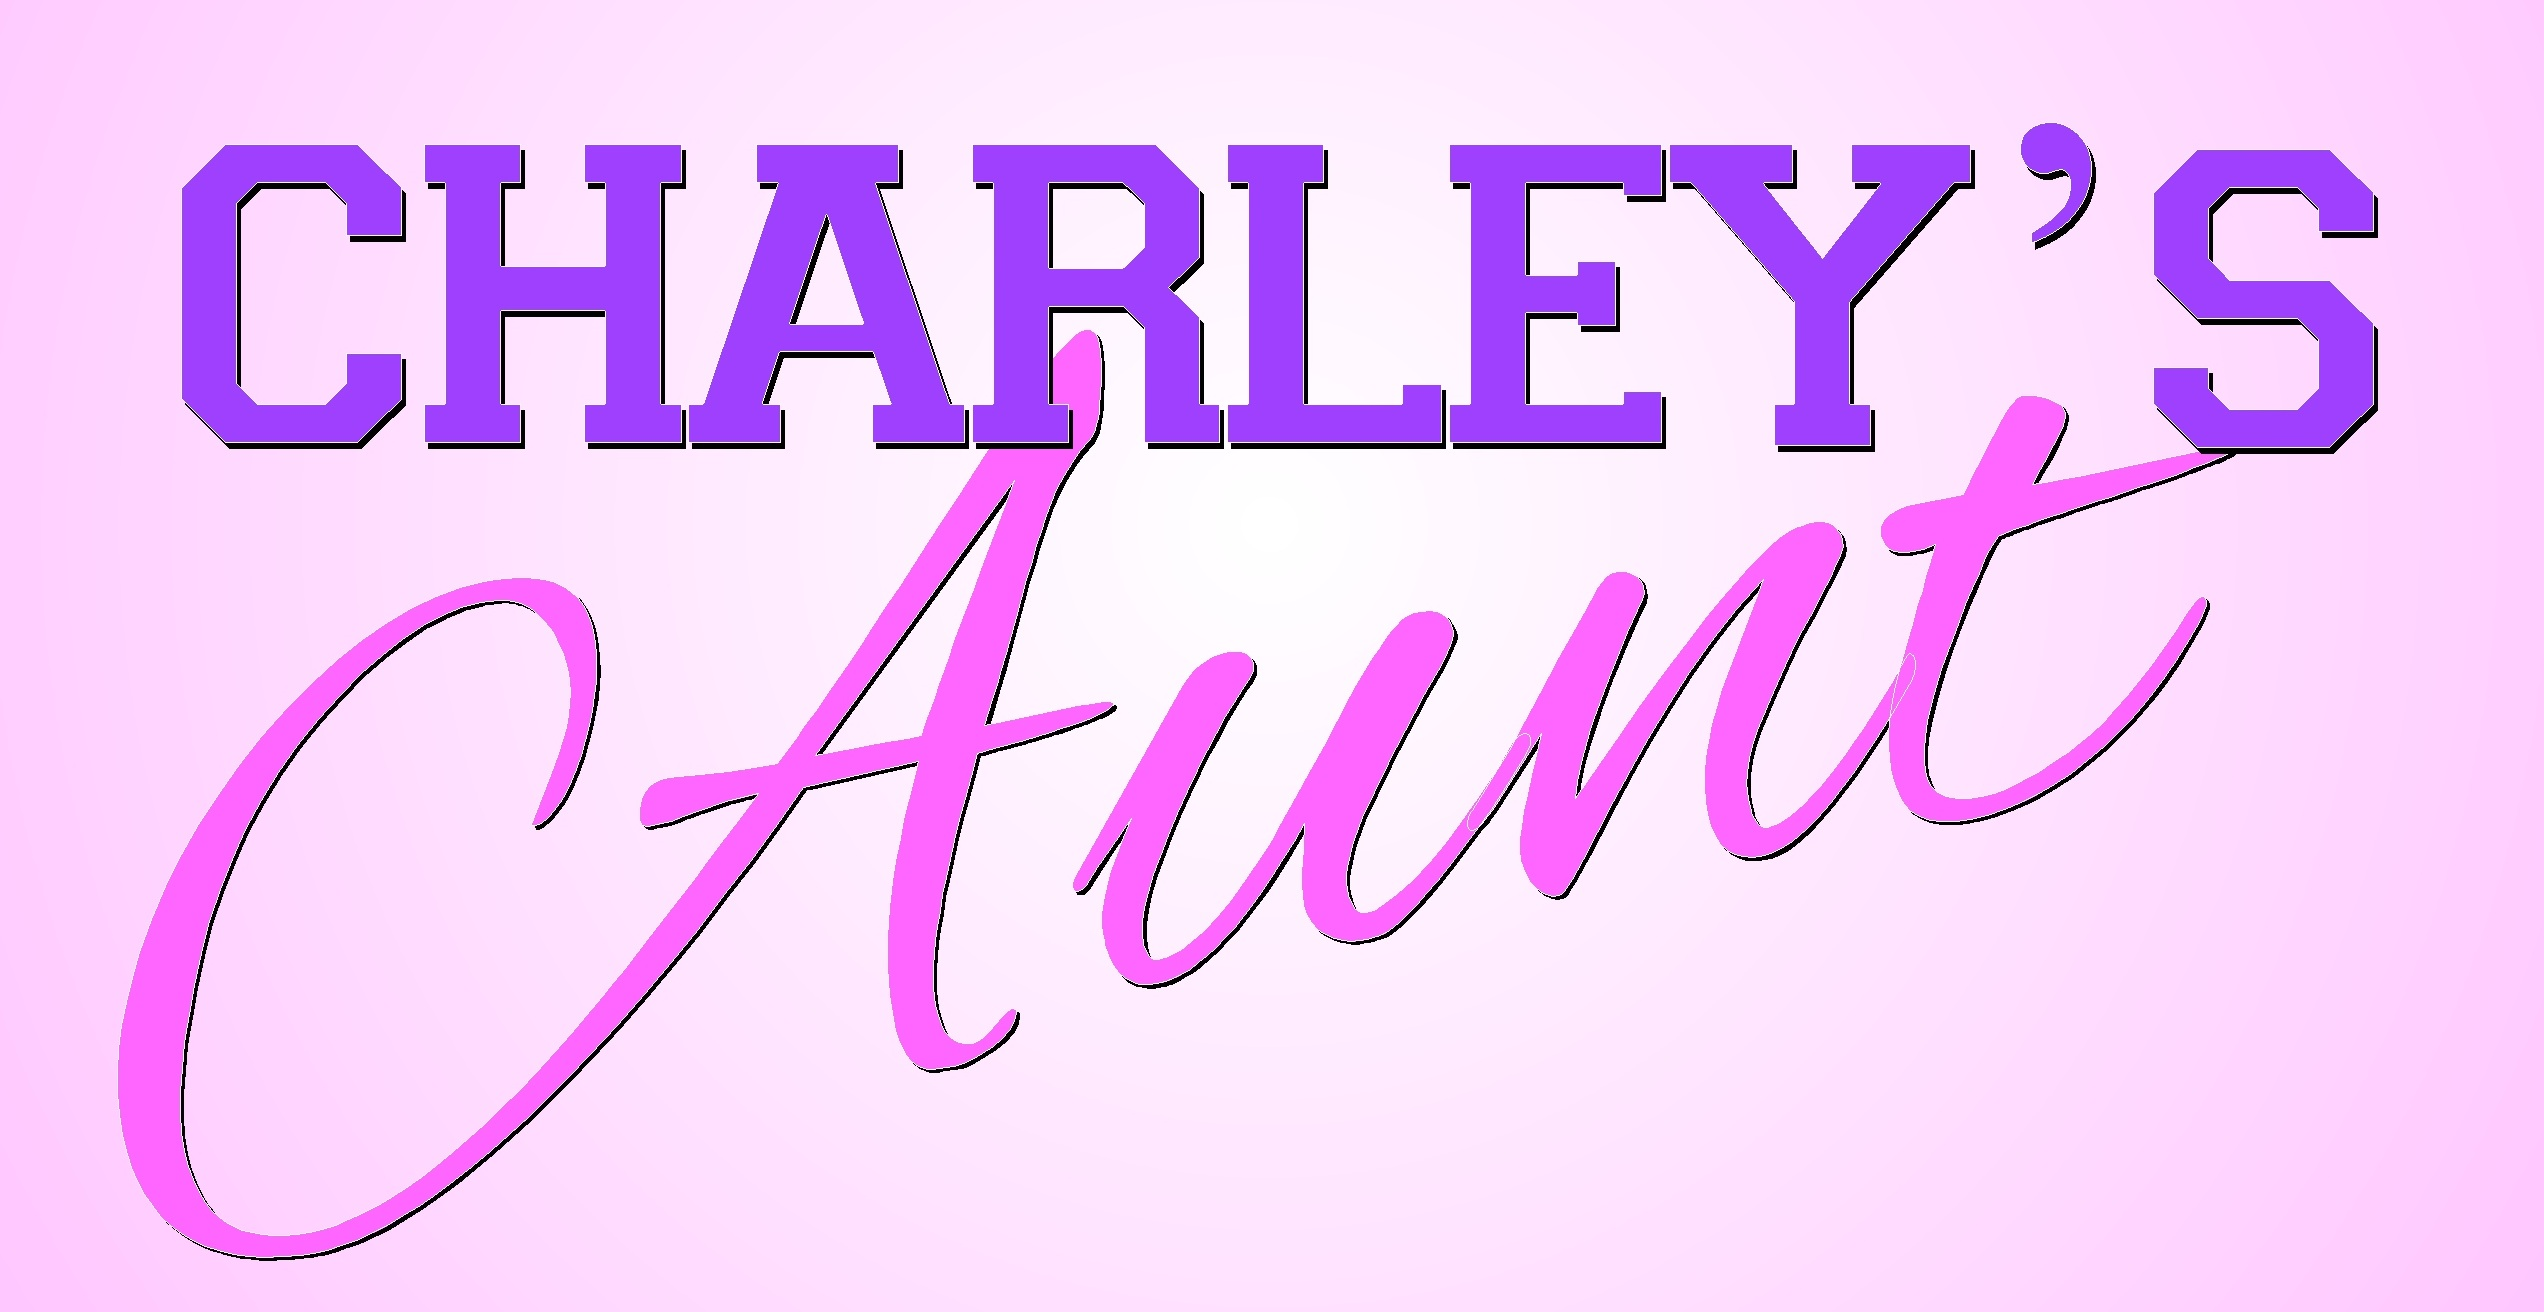 Charley's Aunt logo